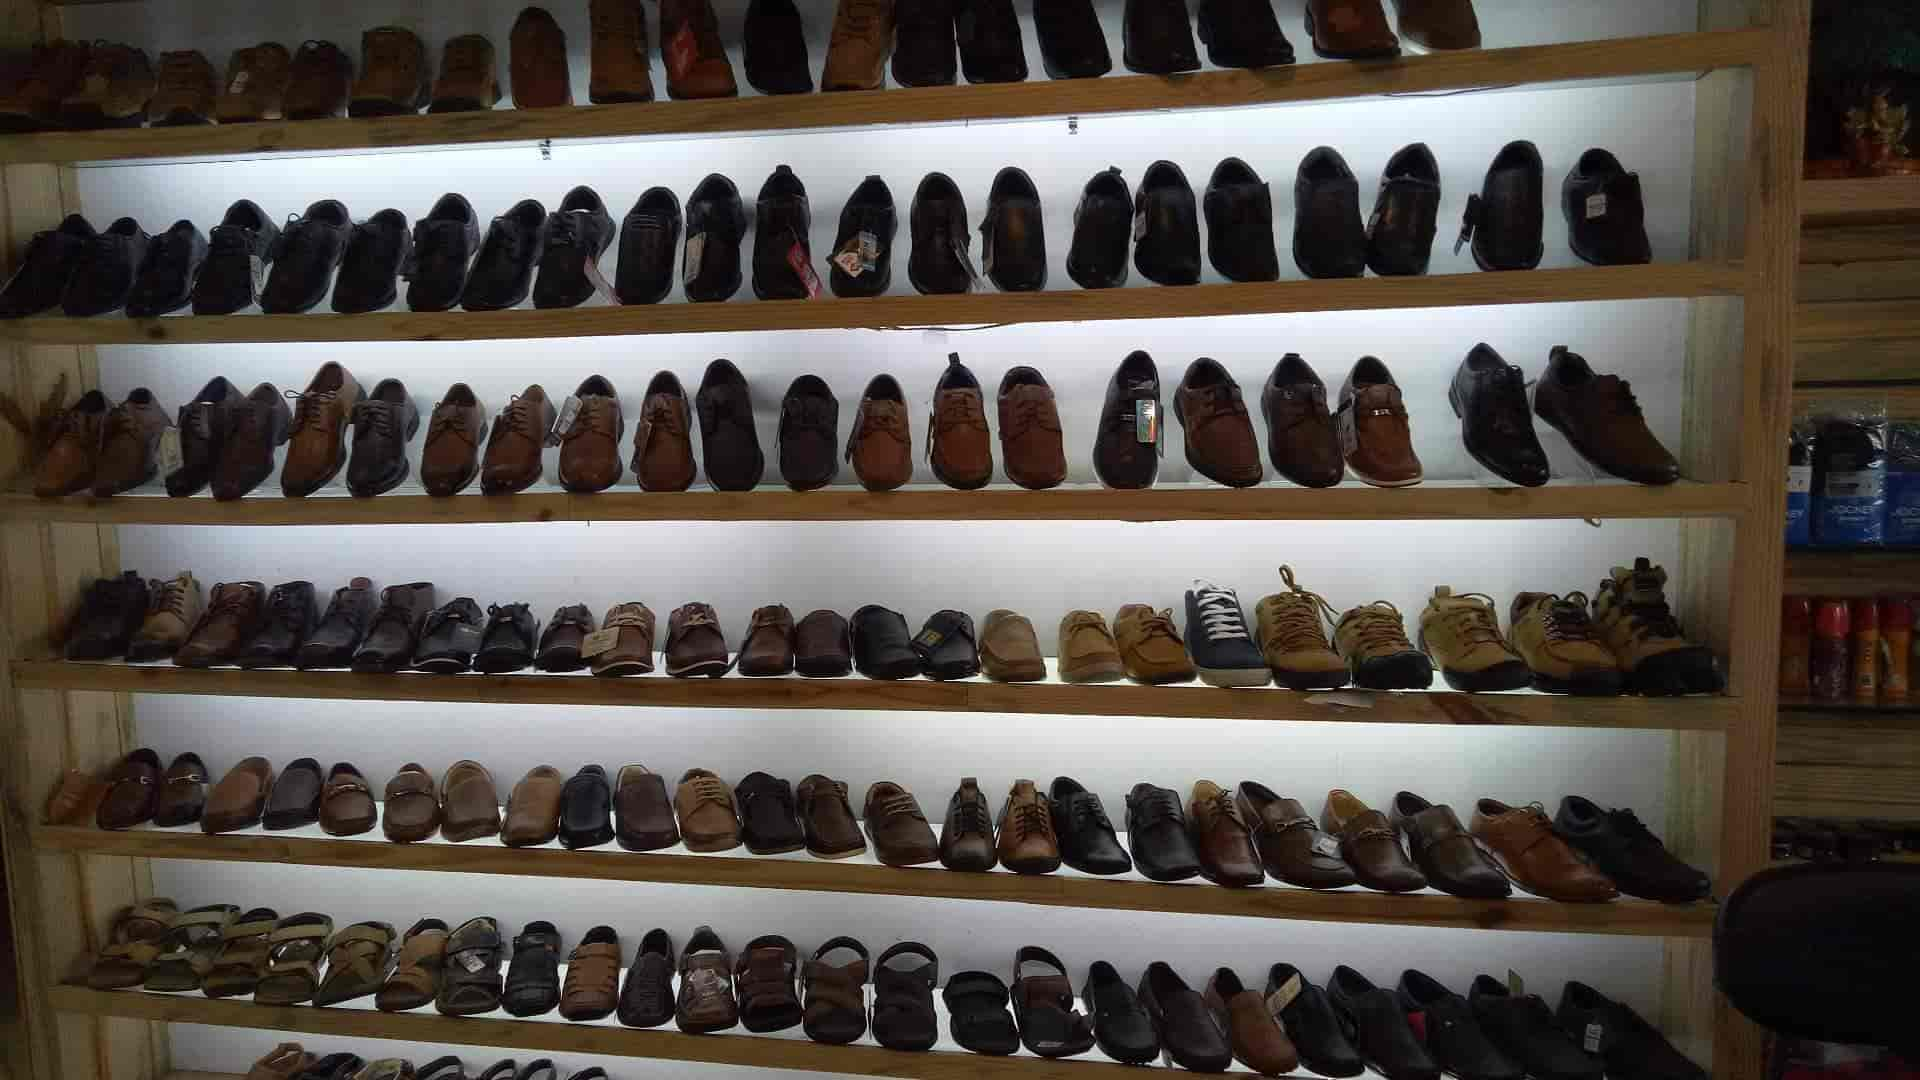 290a12eb09903 Royal Shoes The Family Showroom - Shoe Dealers in Mehsana - Justdial